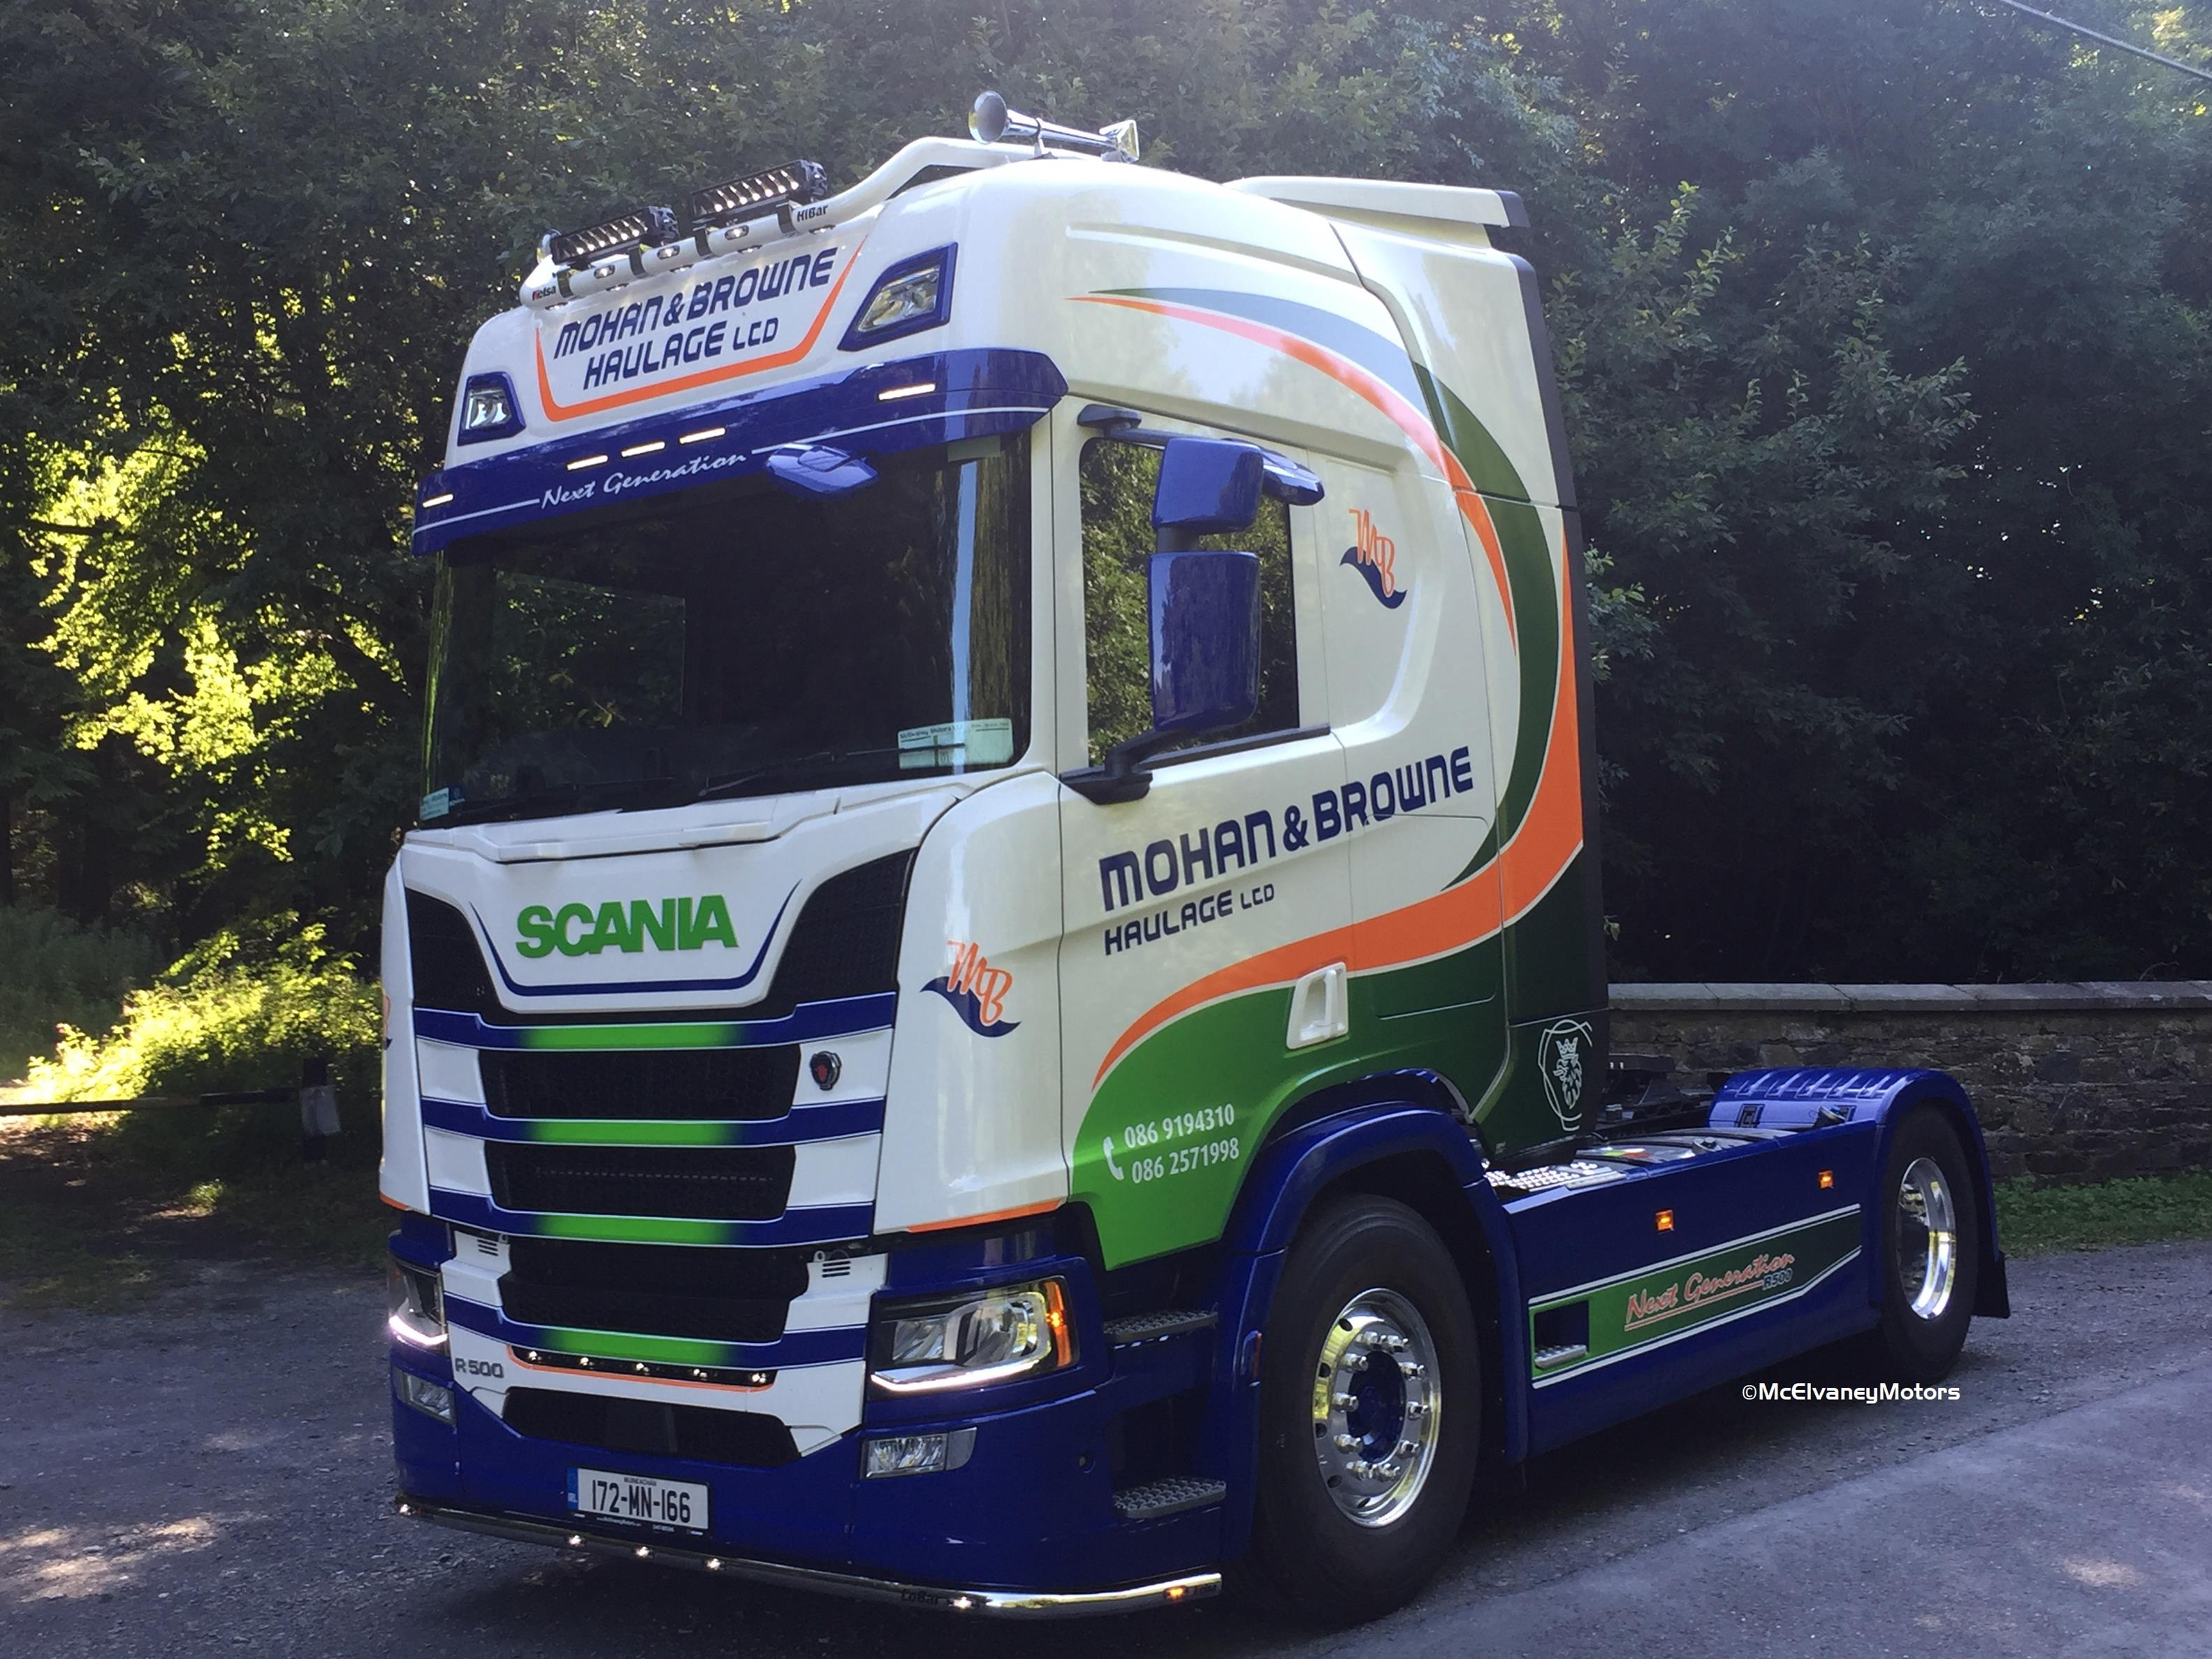 Mohan & Browne Haulage Purchase Stunning New Gen Scania